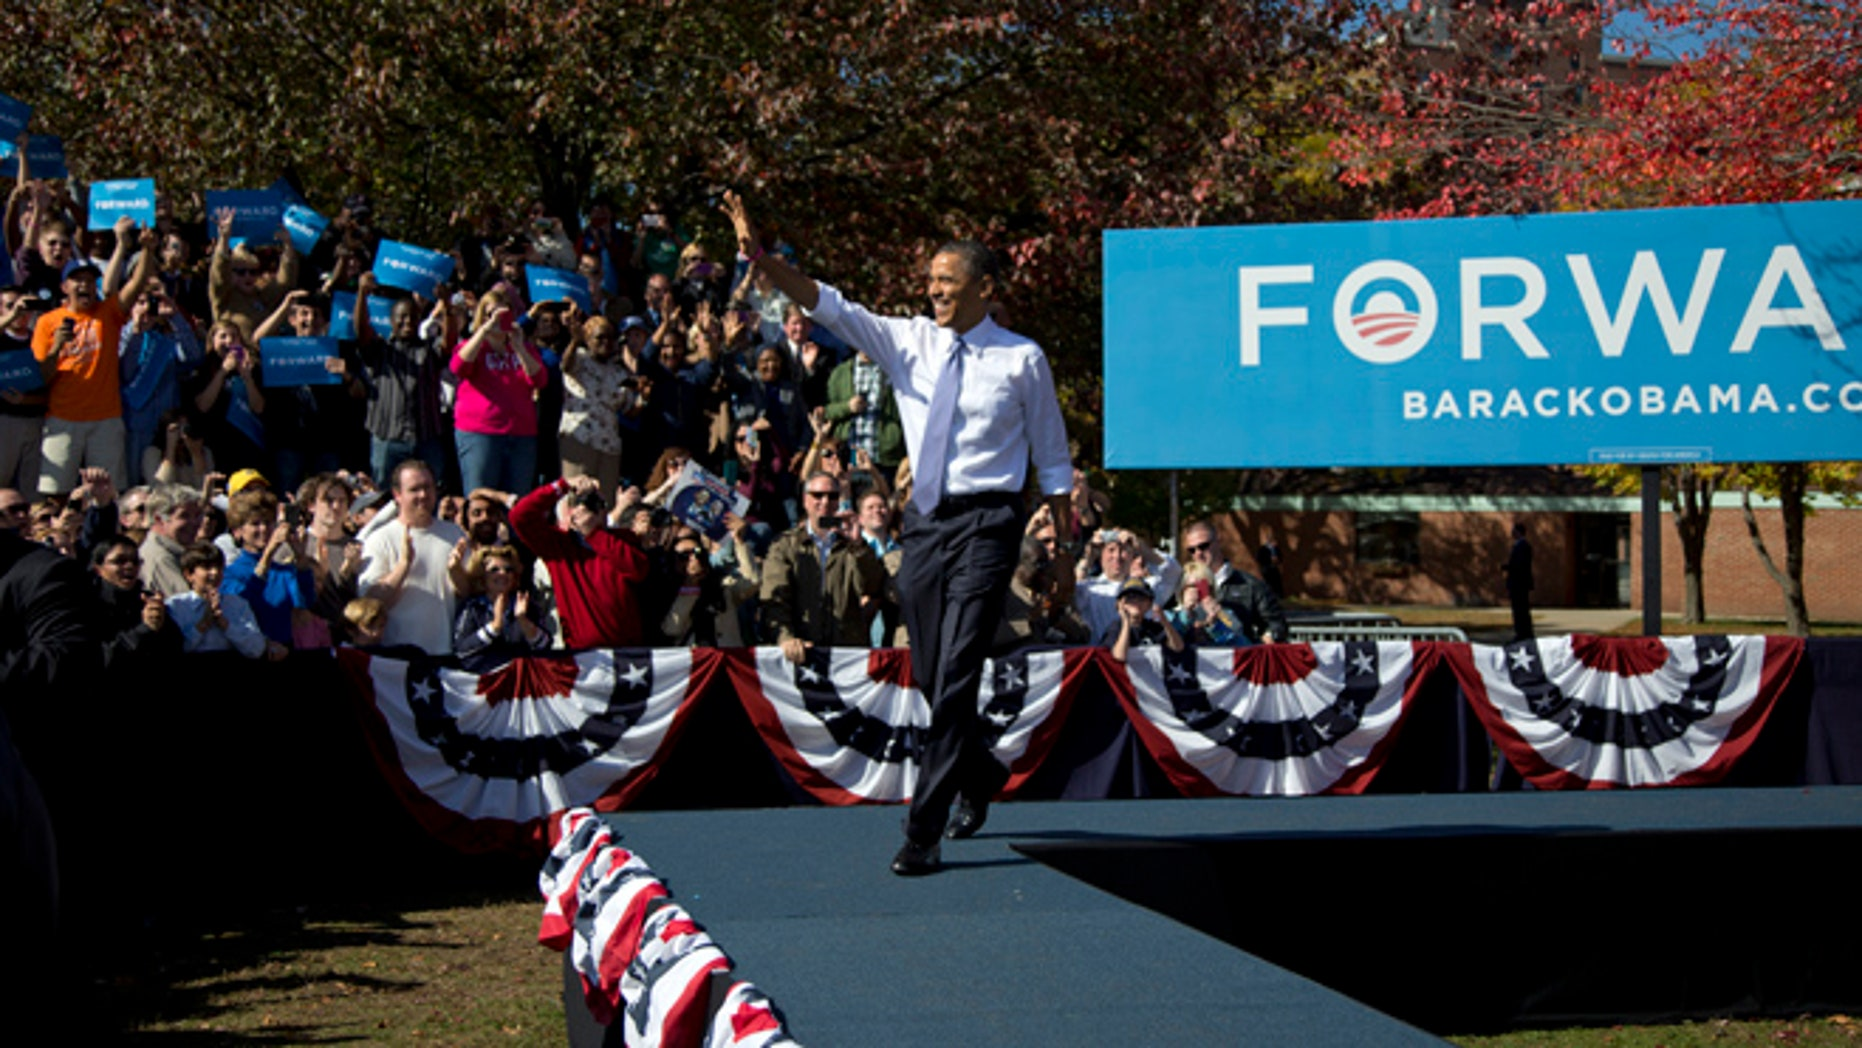 Oct. 18, 2012: President Obama arrives to speak at a campaign event in Manchester, N.H.